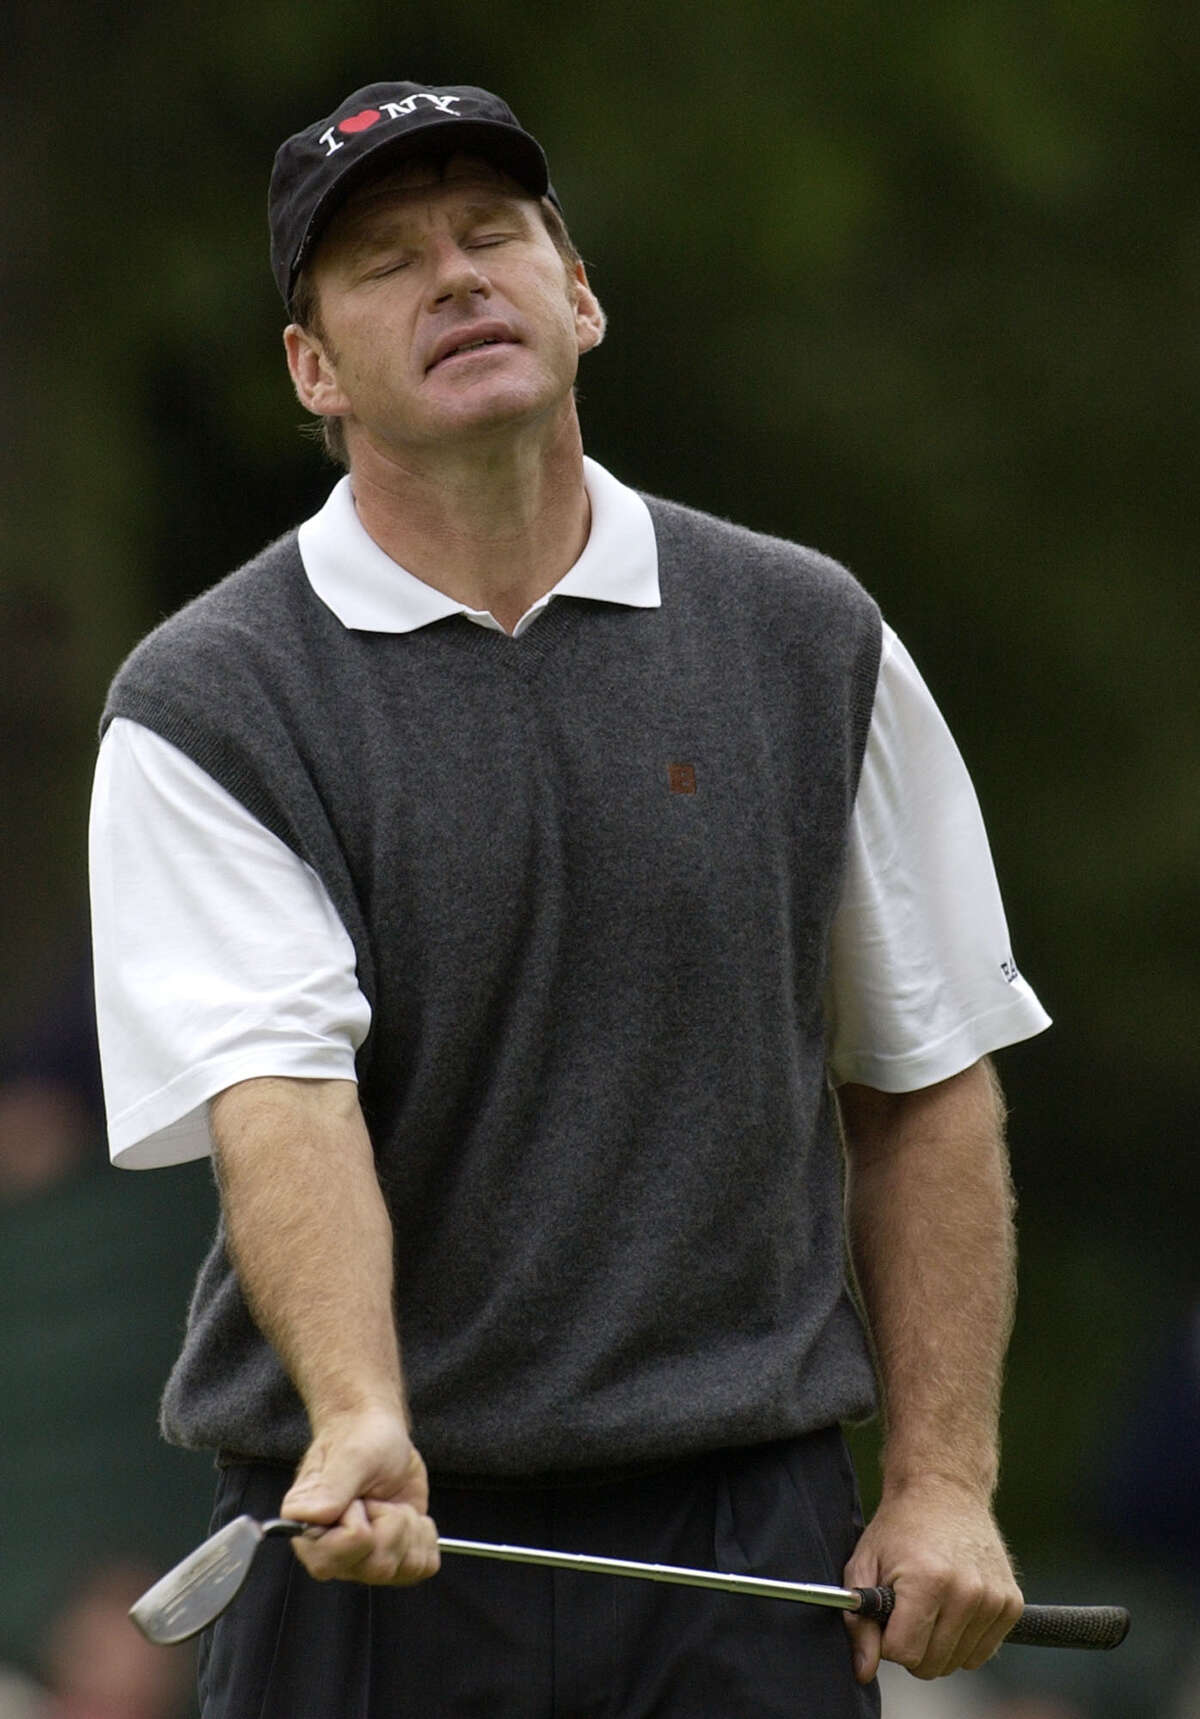 FILE-This June 15, 2002 file photo shows Nick Faldo reacting after missing a birdie putt on the second green during the third round of the U.S. Open Golf Championship at the Black Course of Bethpage State Park in Farmingdale, N.Y. Always a thinker, Faldo was looking for the secret to winning when he met with Ben Hogan and asked him what it takes to win the U.S. Open.